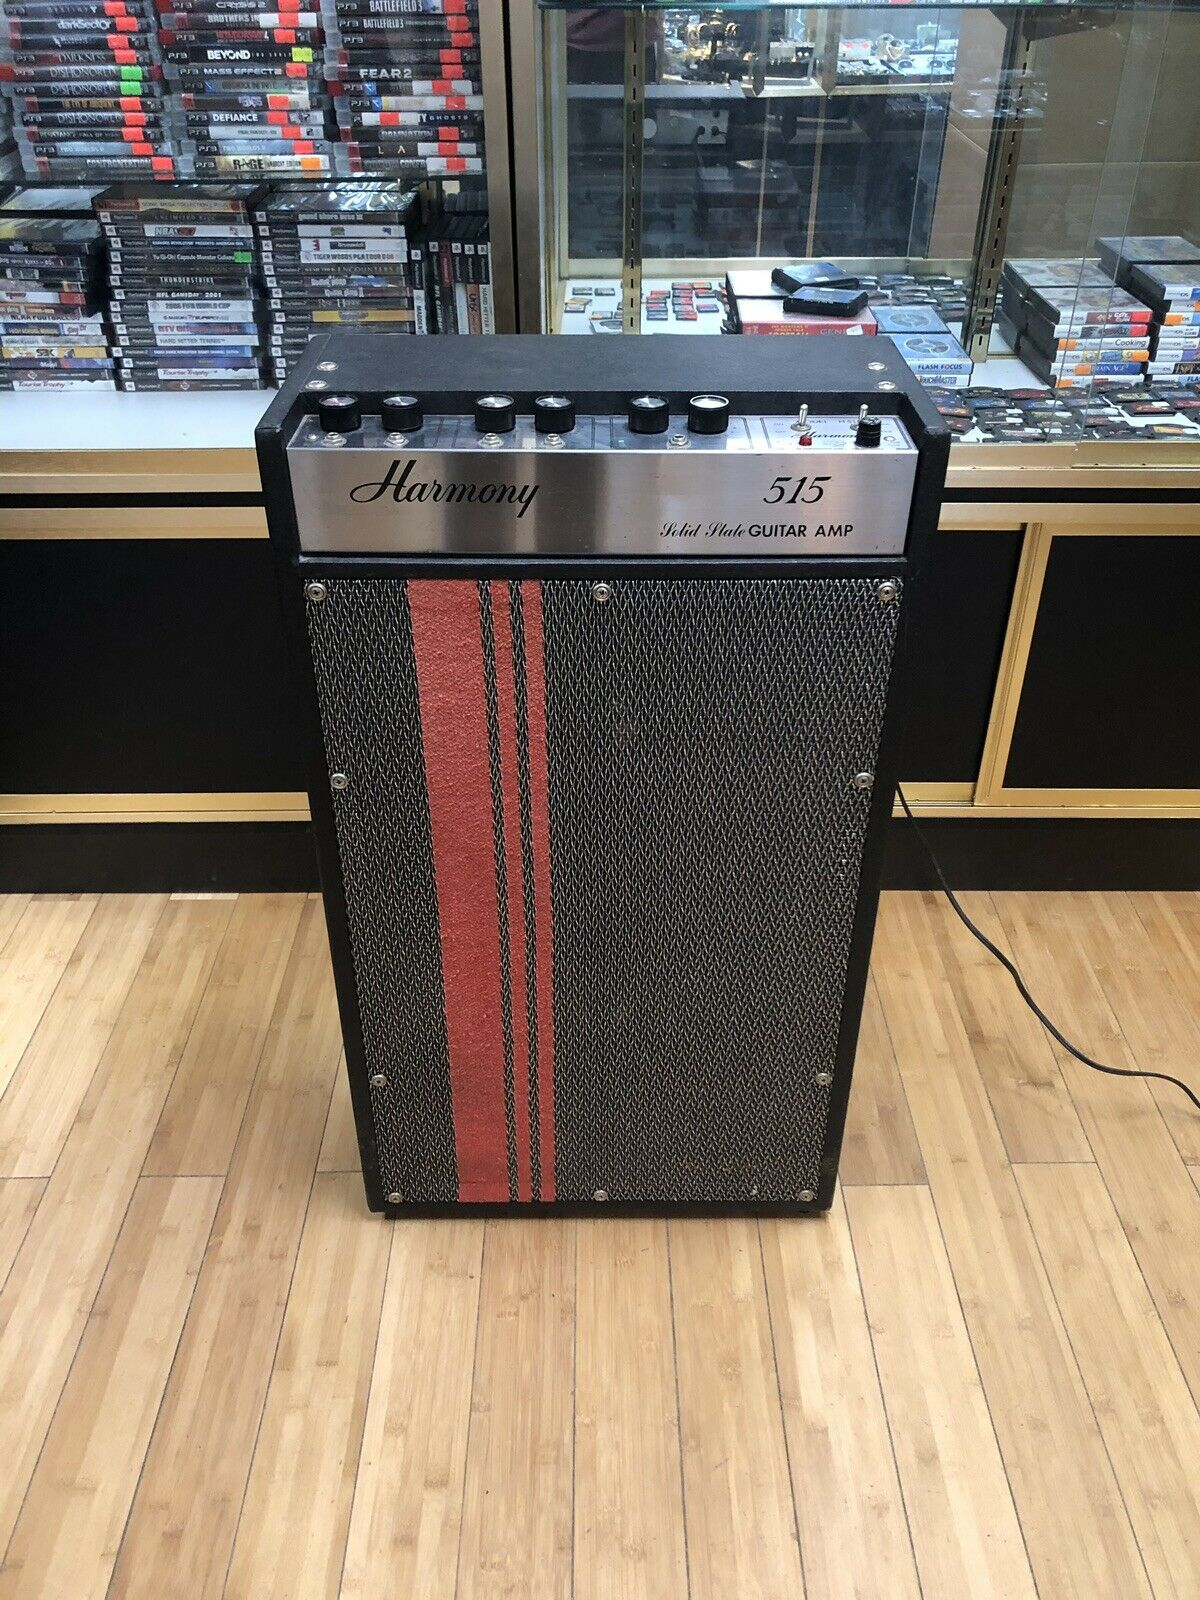 Harmony 515 Solid State Guitar Amp 1969